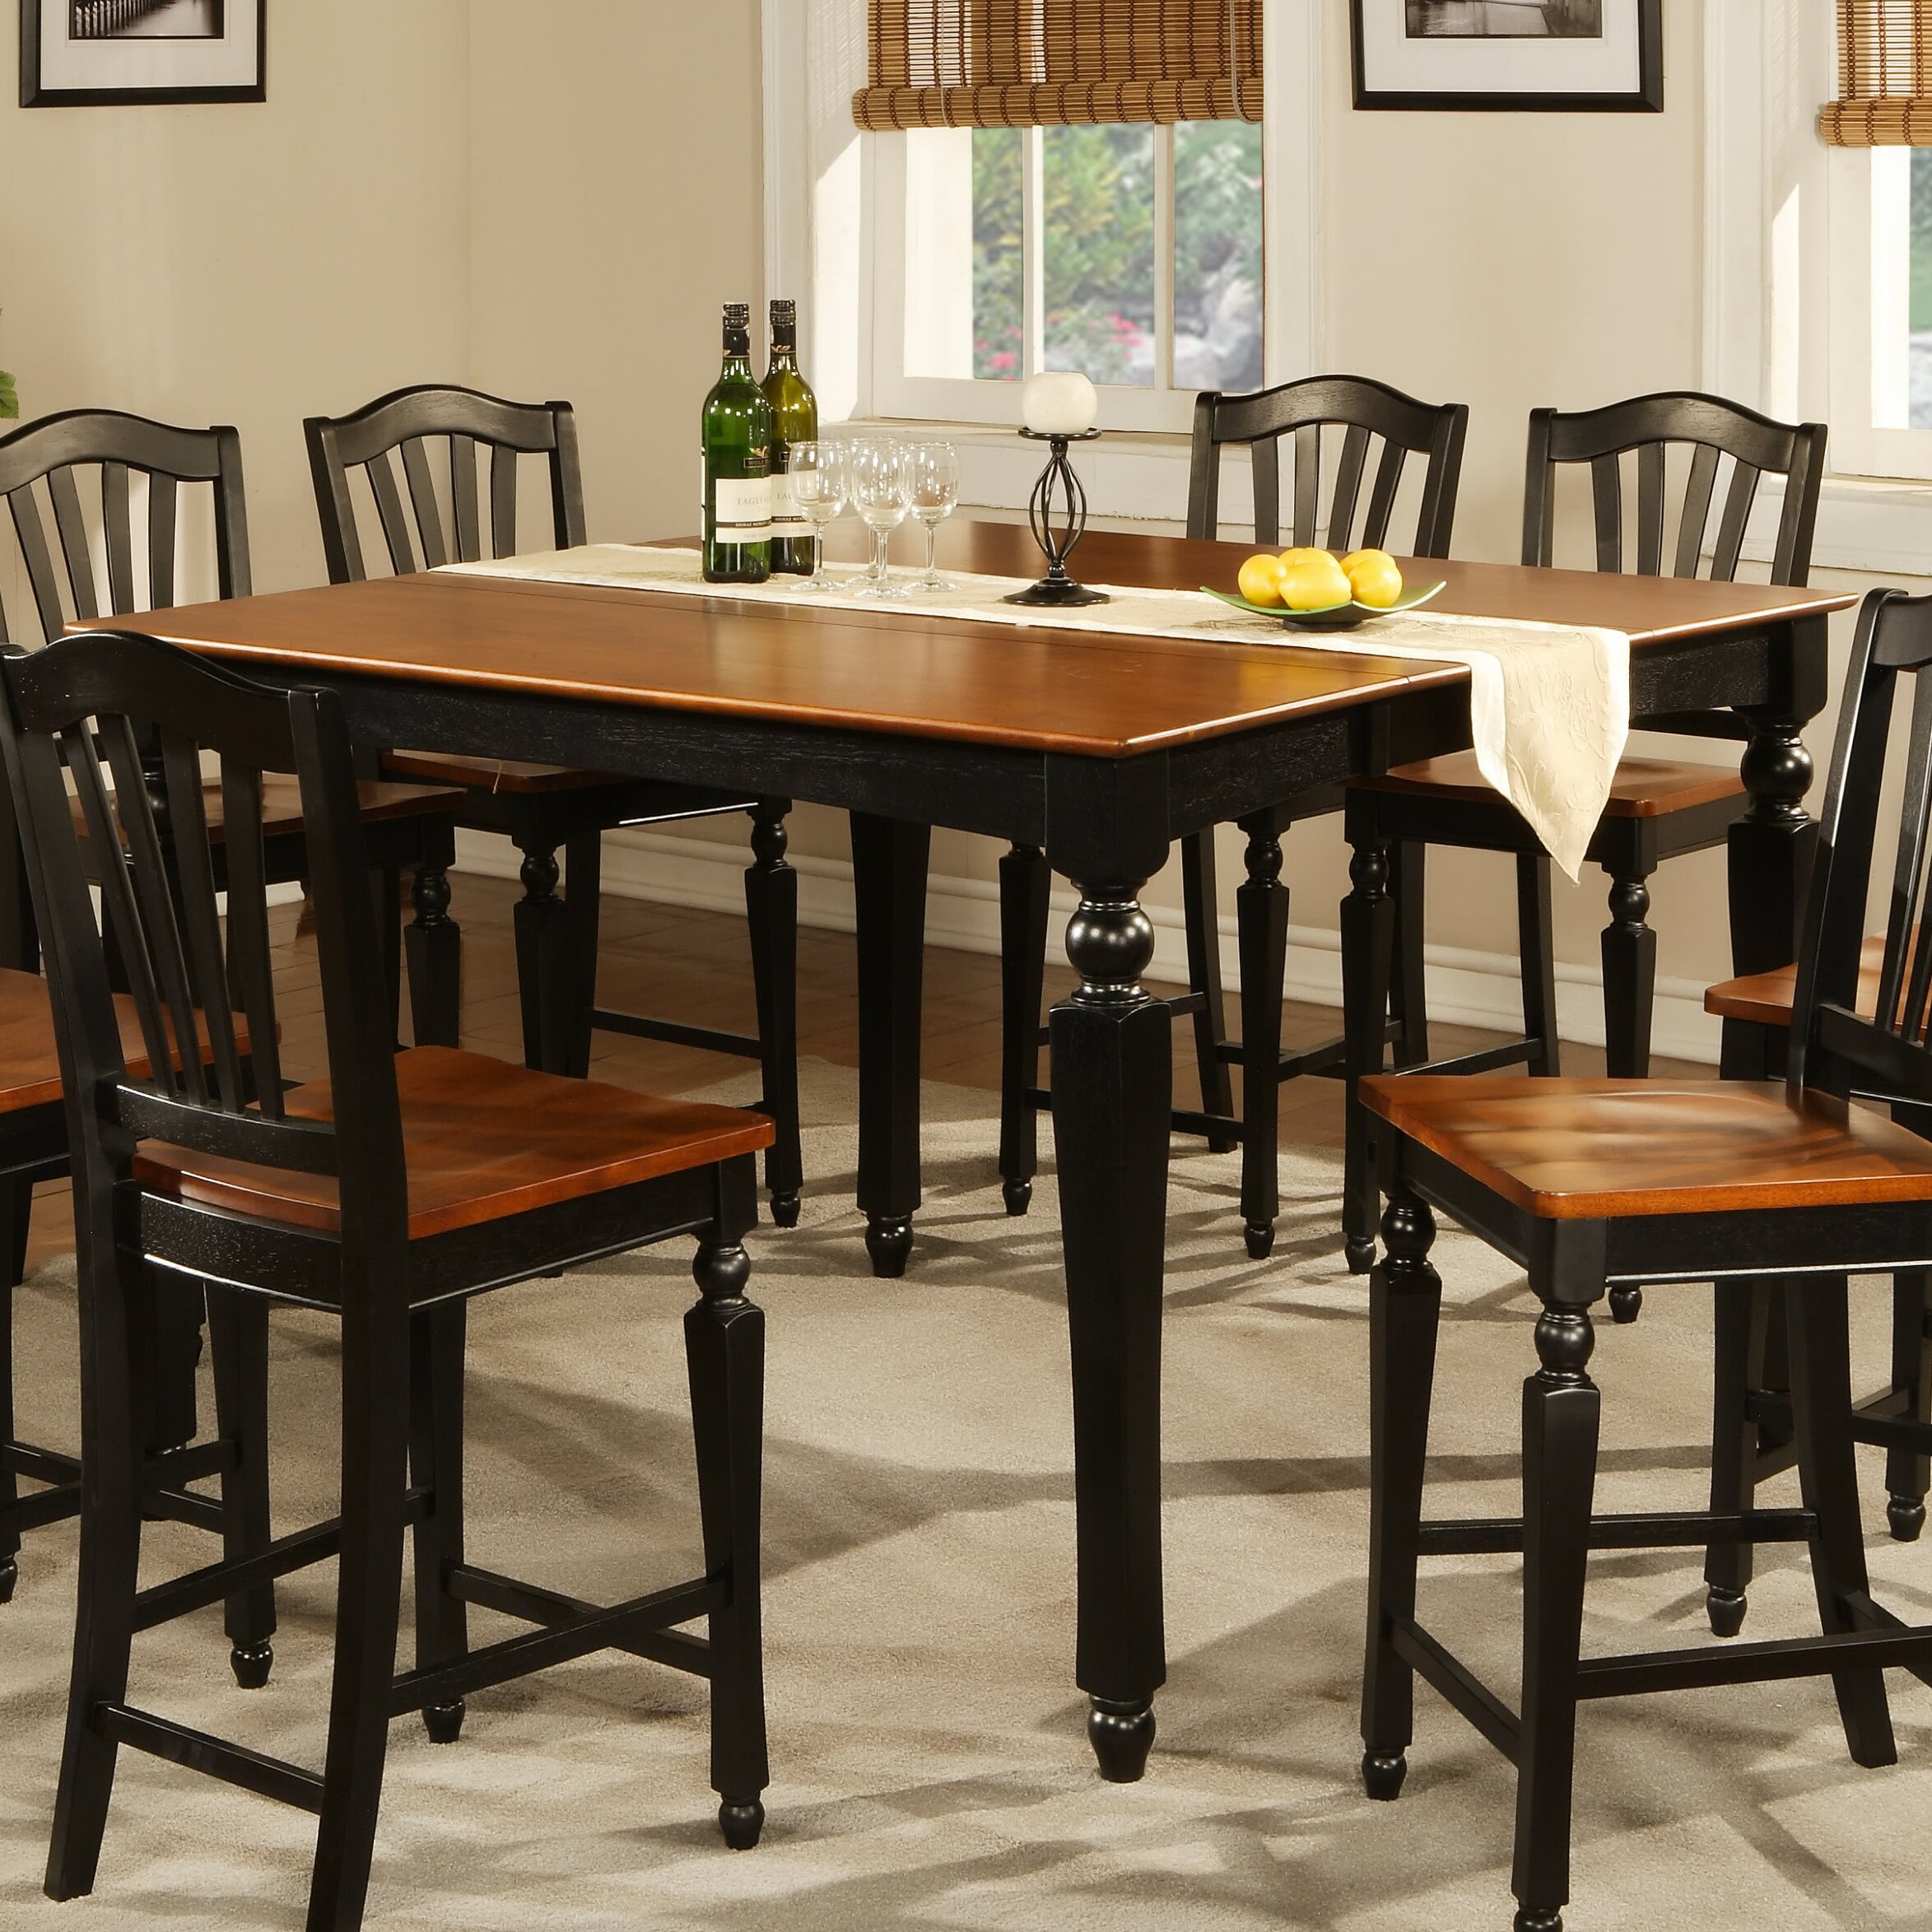 East west chelsea 7 piece dining set reviews for 9 piece dining room sets square